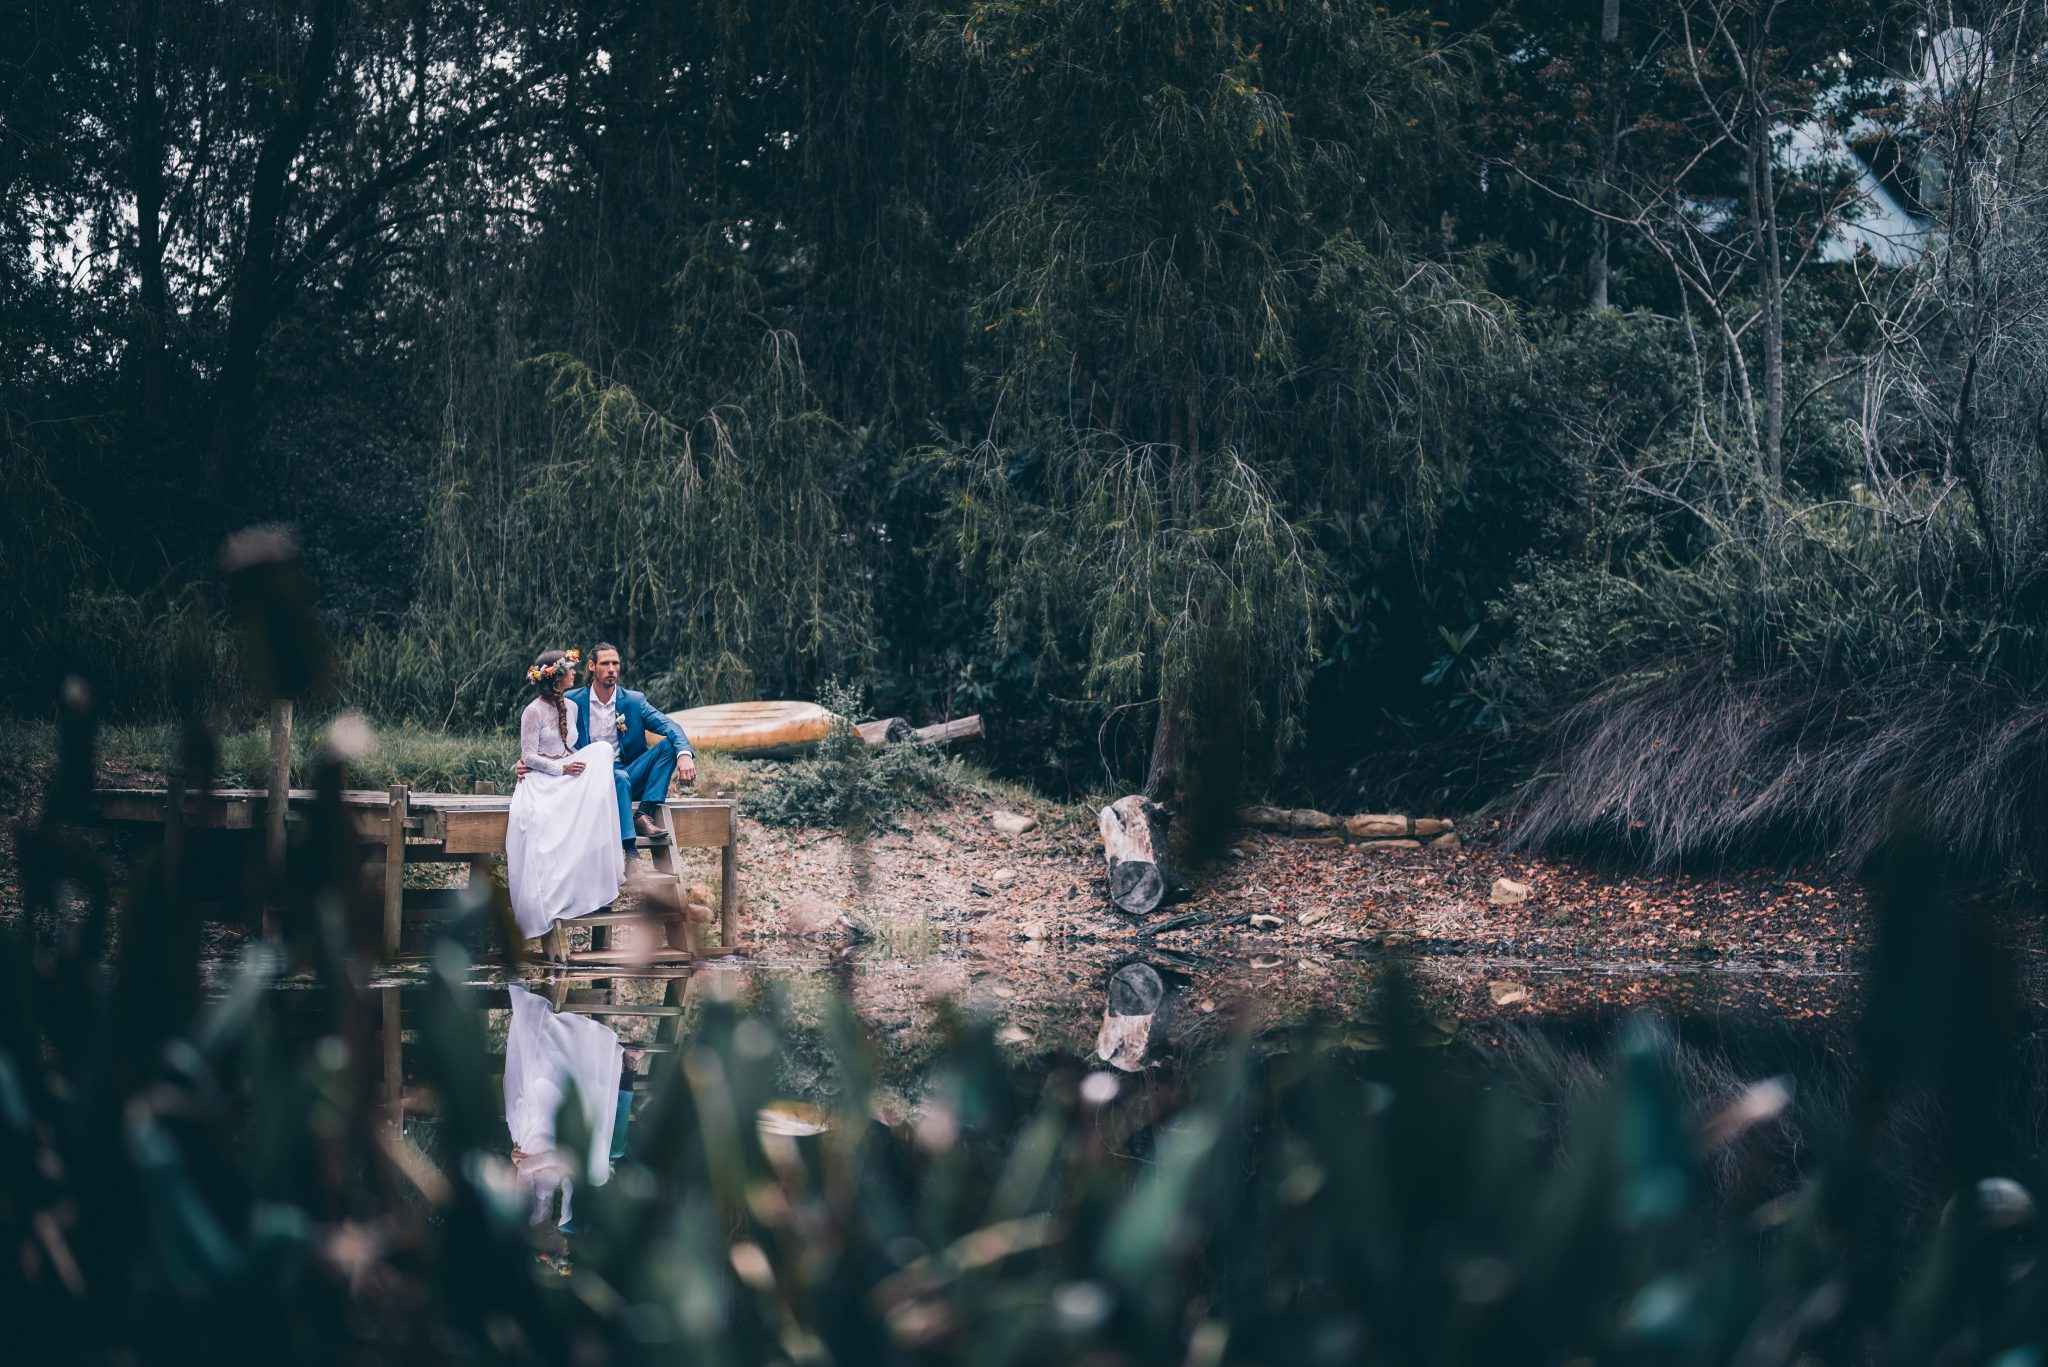 Garden Route Wedding Photographer, peace of eden, sharyn hodges, plettenberg bay photographer, family photographer